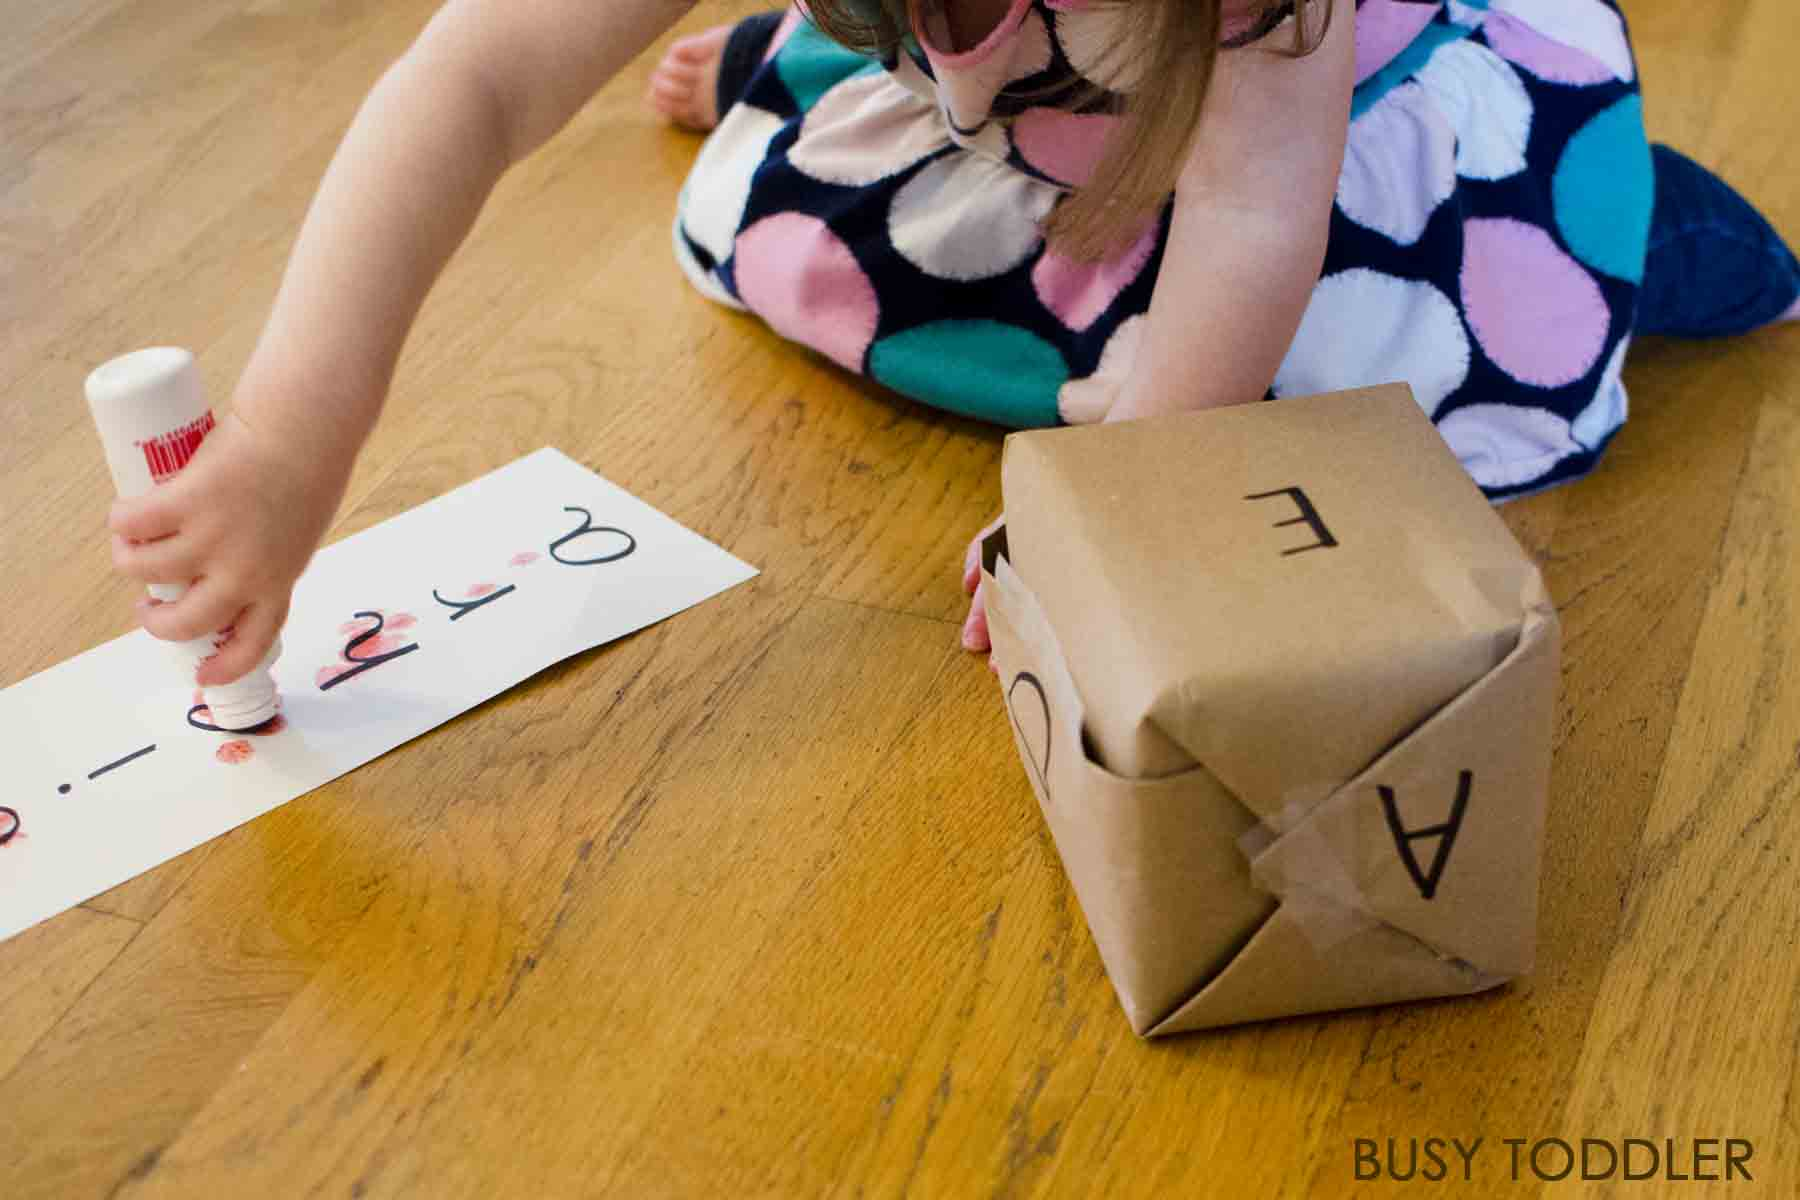 ALPHABET ROLL AND CROSS: Check out this fun DIY alphabet game that's perfect for toddlers learning their ABCs. This easy literacy activity is perfect for toddlers and preschoolers. A great indoor activity and fun game for toddlers!